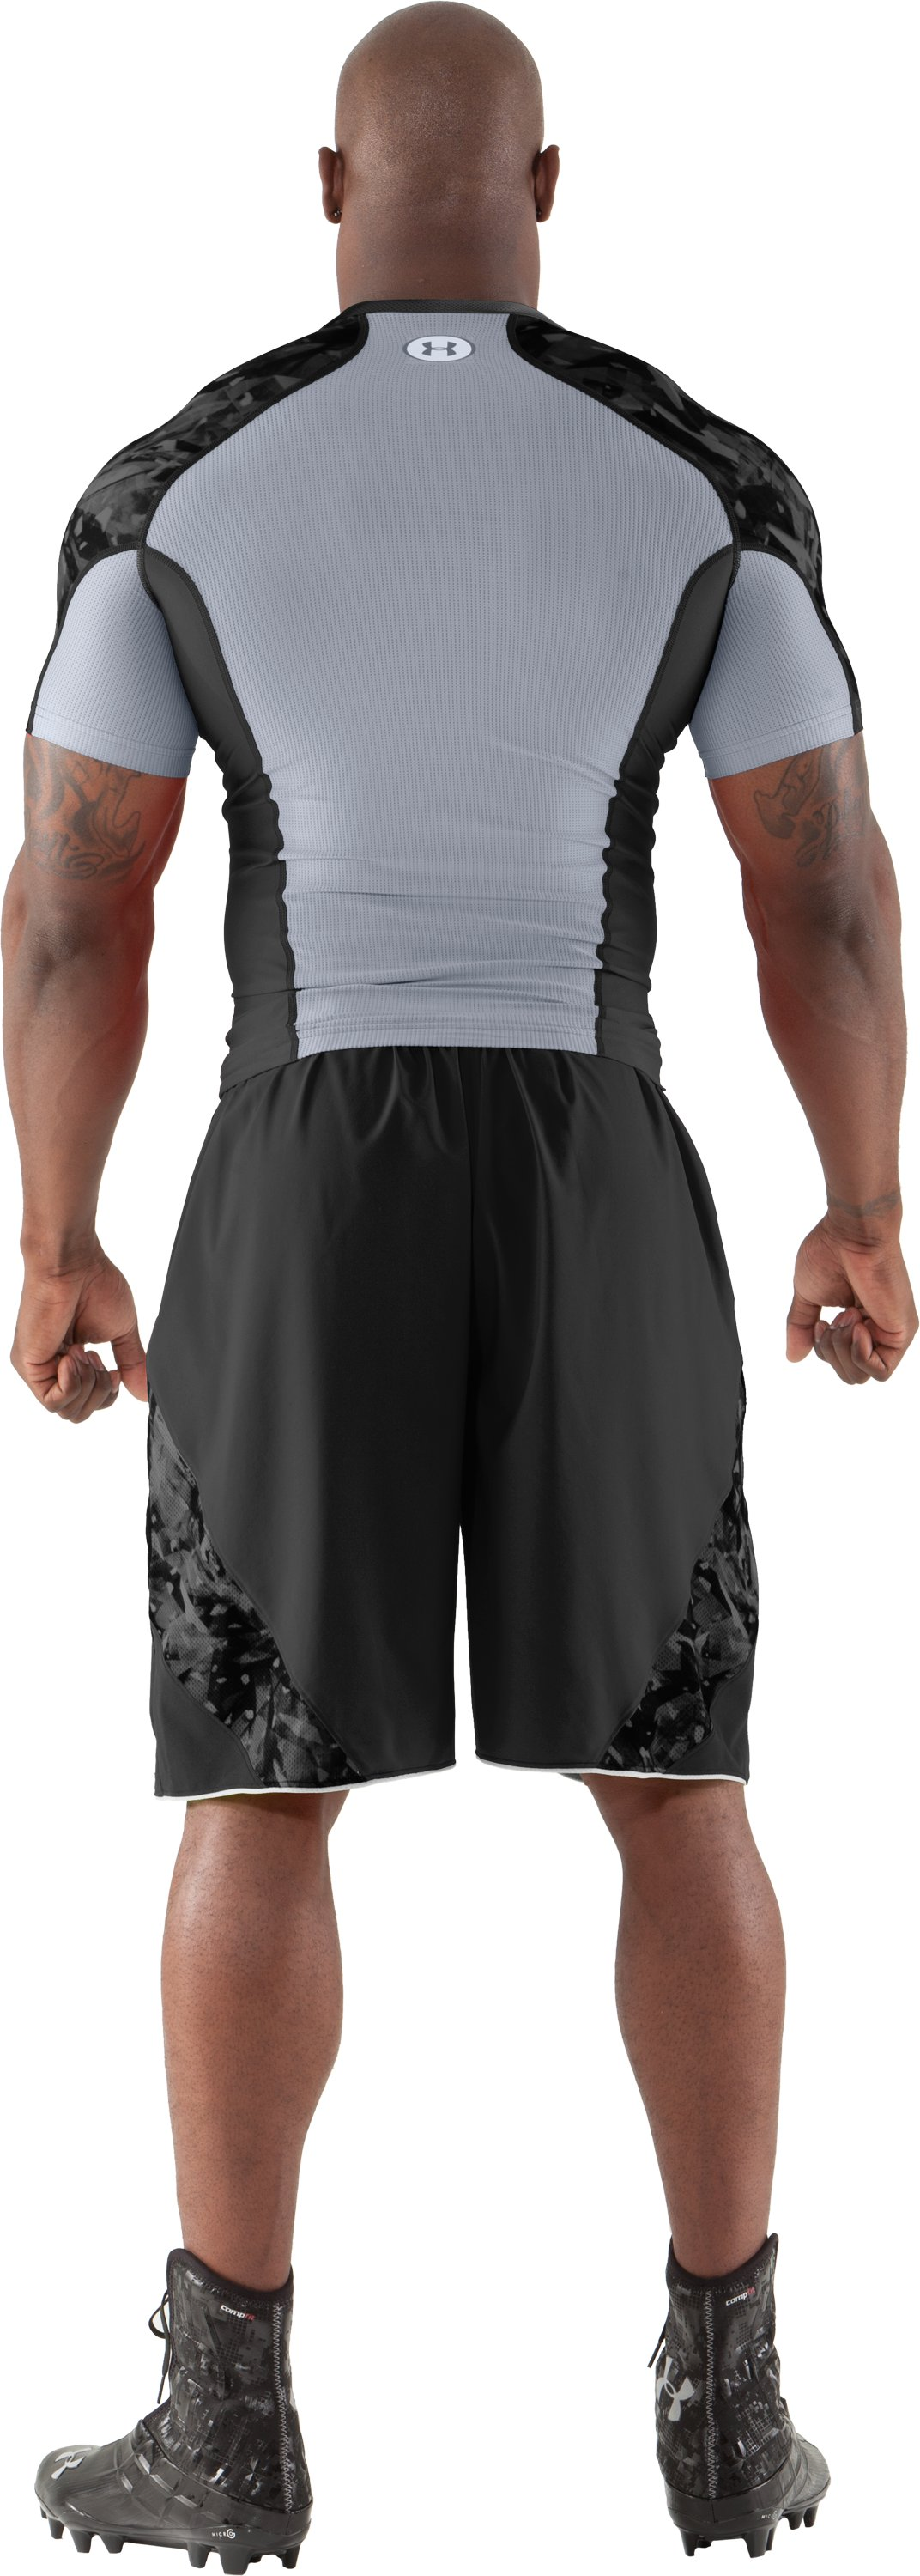 Men's NFL Combine Authentic Compression Short Sleeve, Black , Back